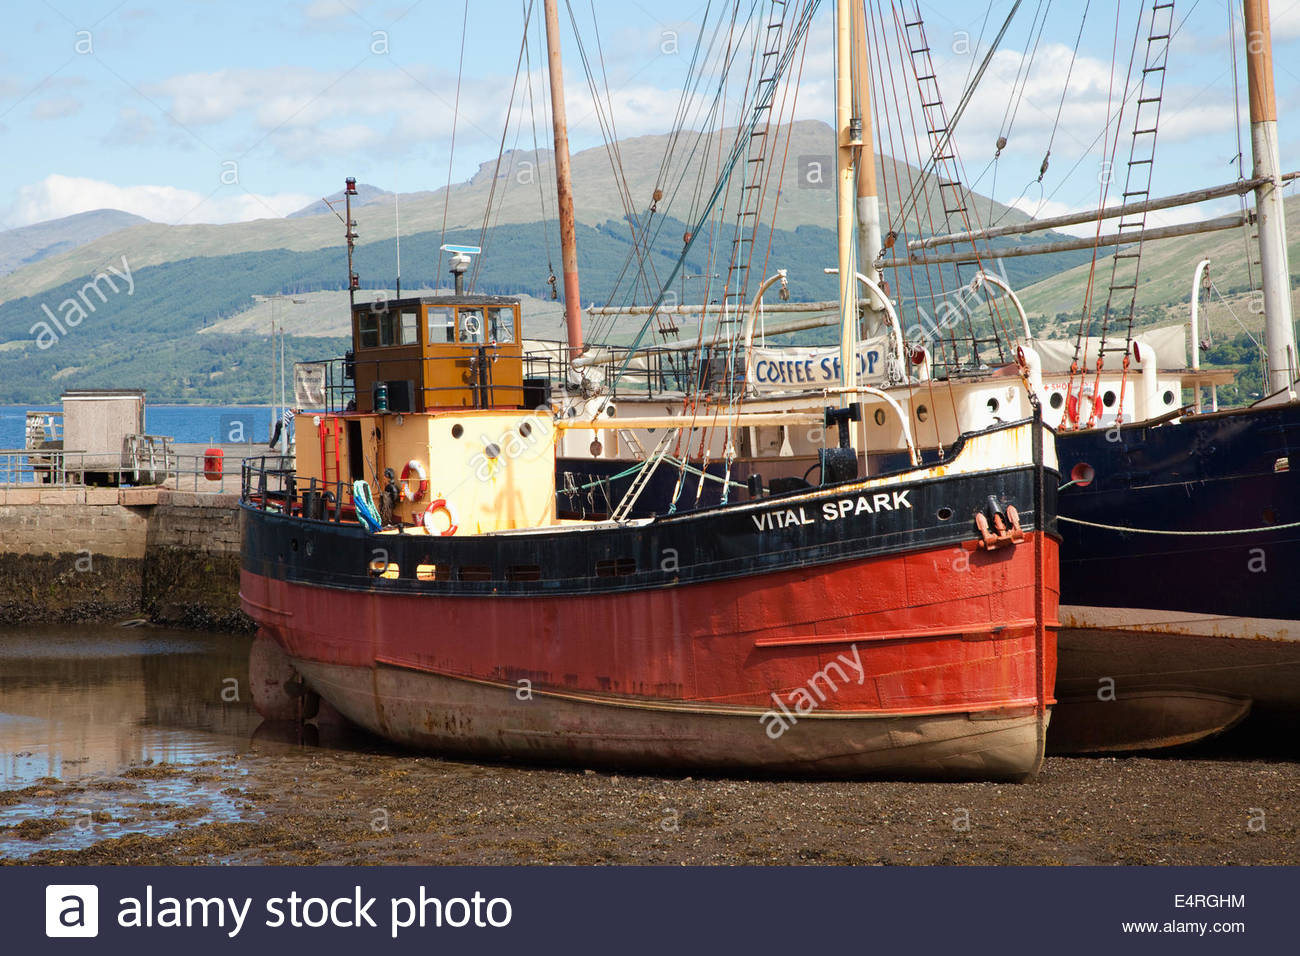 The Vital Spark Clyde Puffer (named after the boat that featured in the Para Handy stories) at low tide - part of - Stock Image